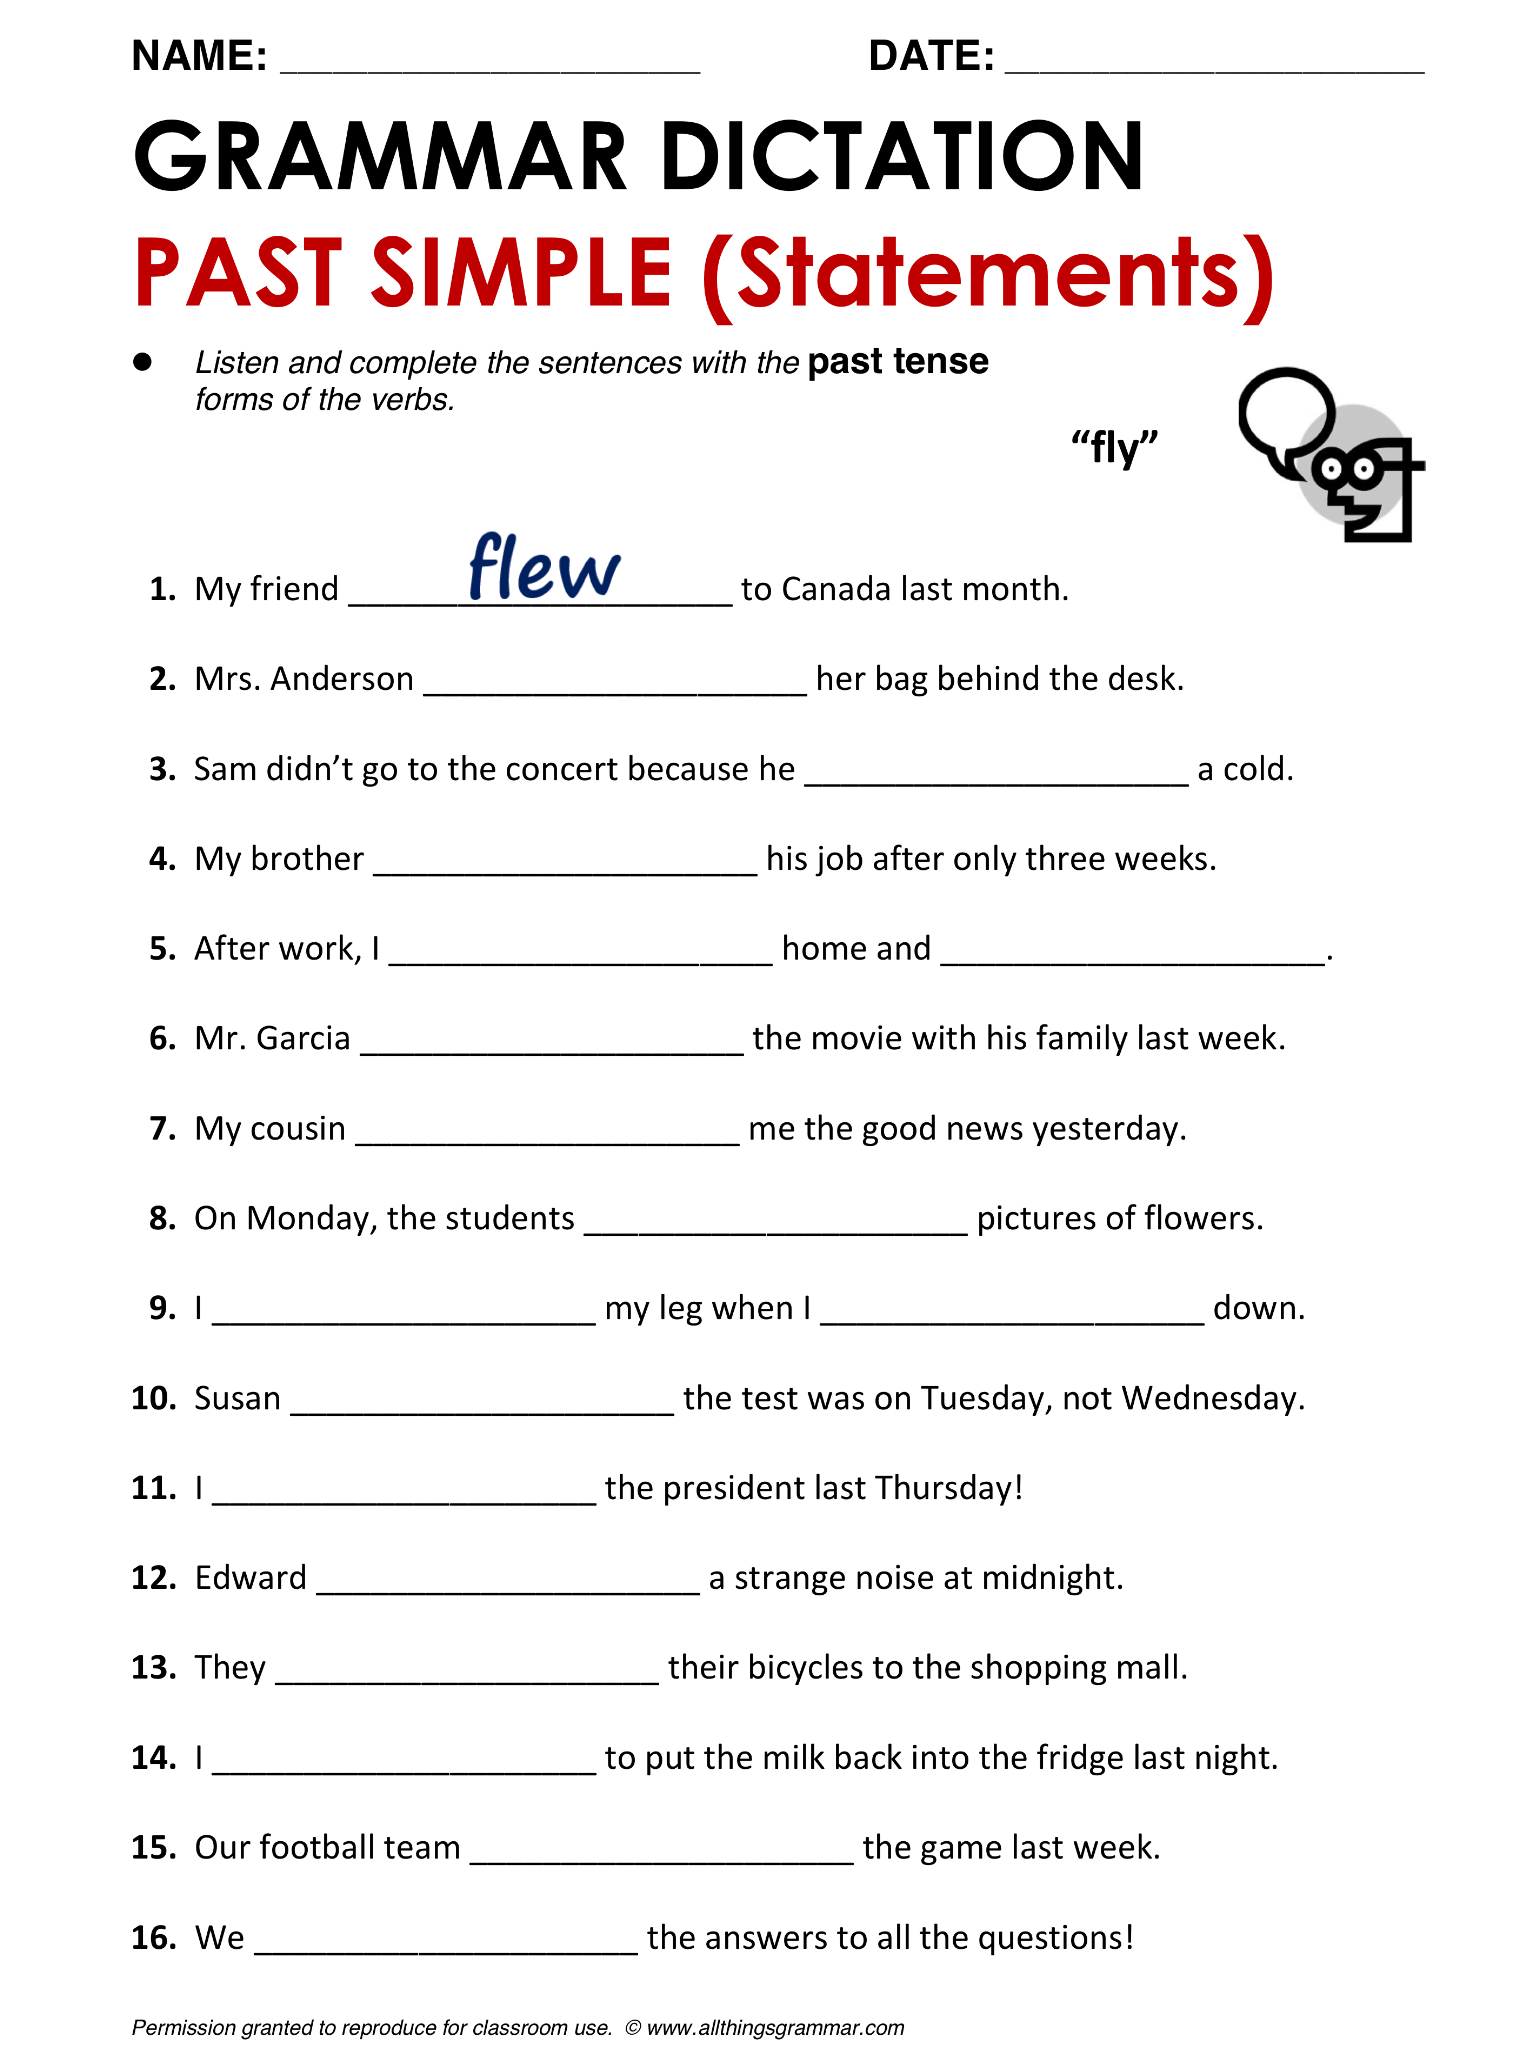 English Grammar Past Simple www.allthingsgrammar.com/past